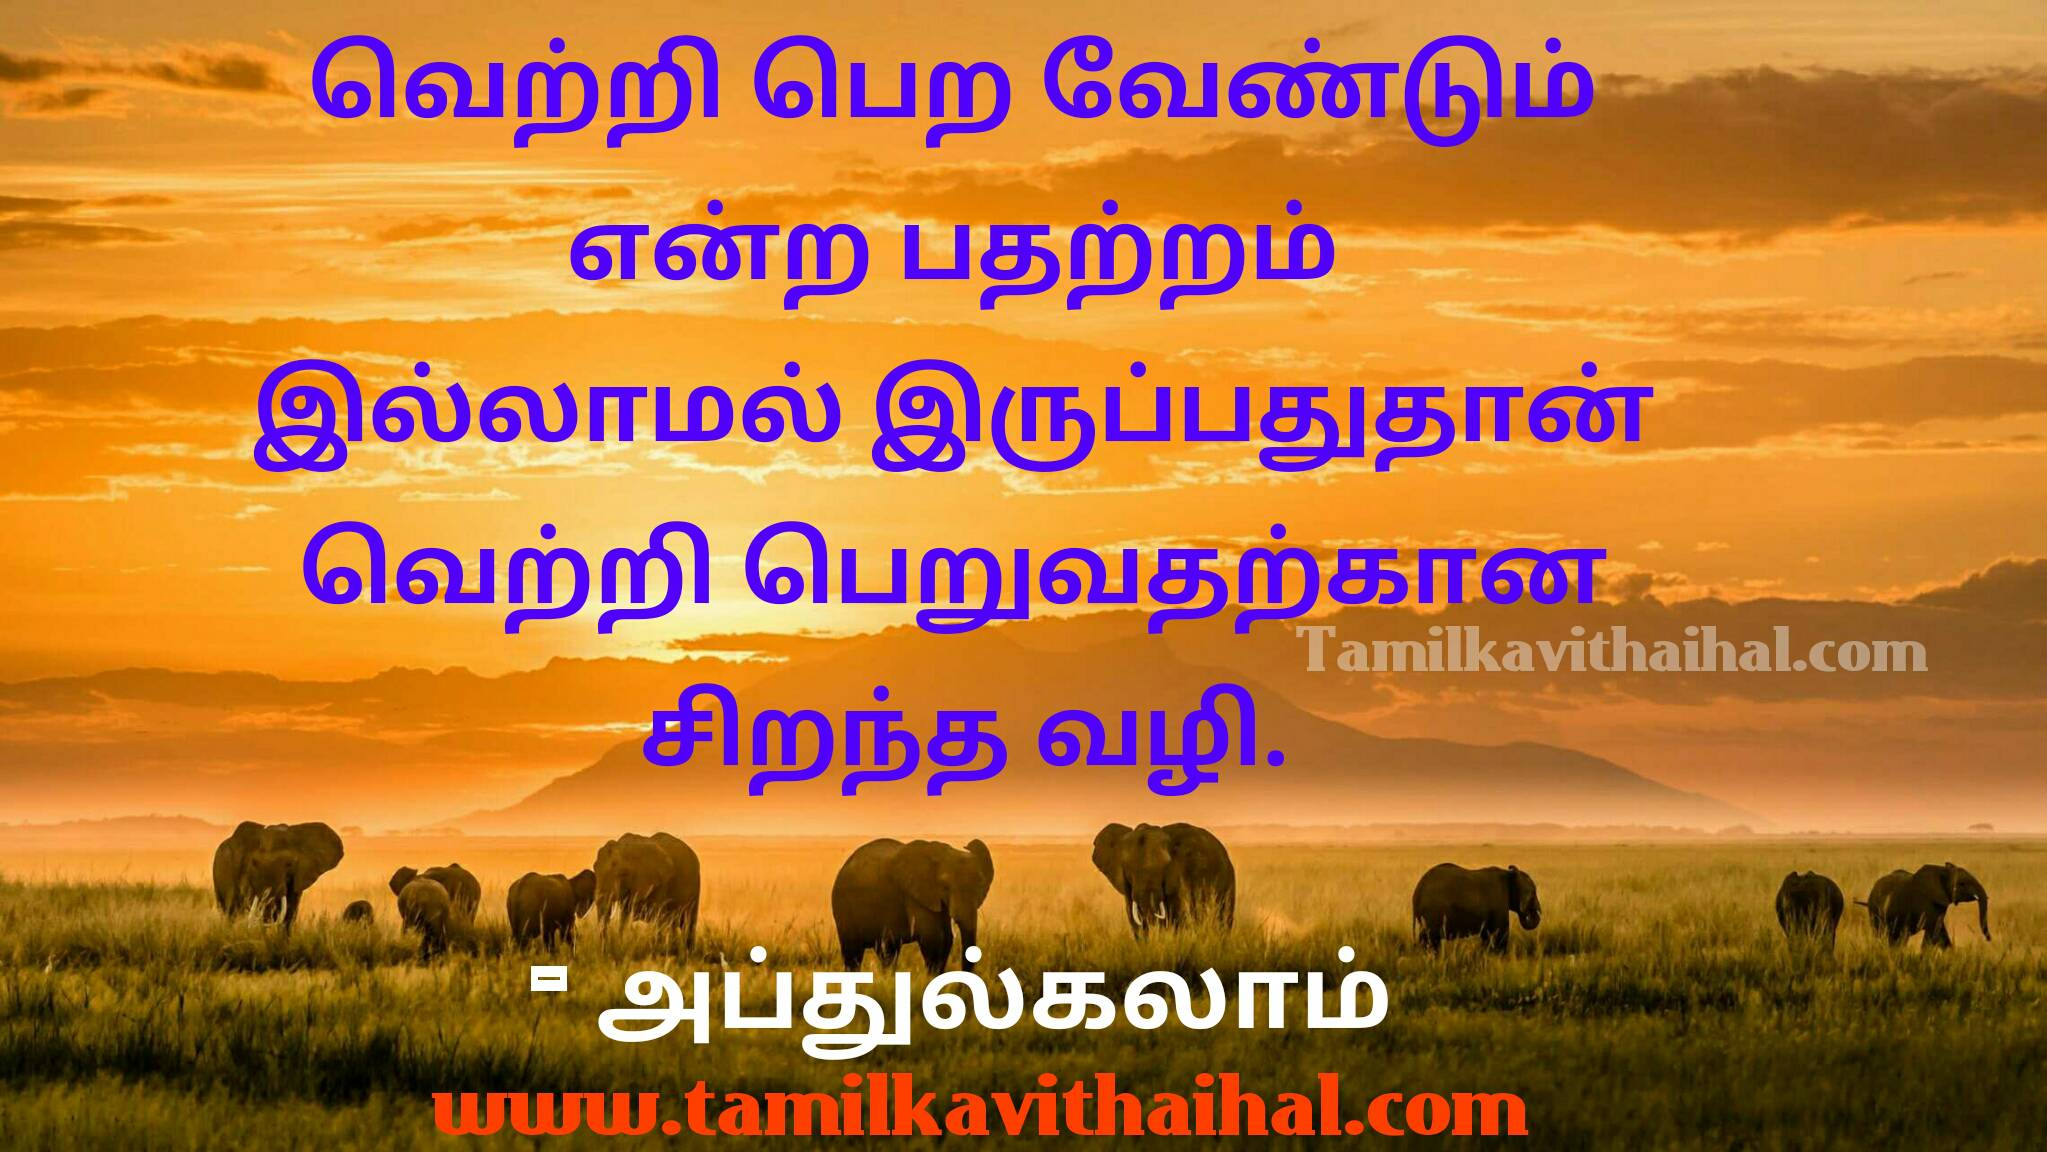 Dr abdhul kalam great words in tamil language about success and positive thathuvam